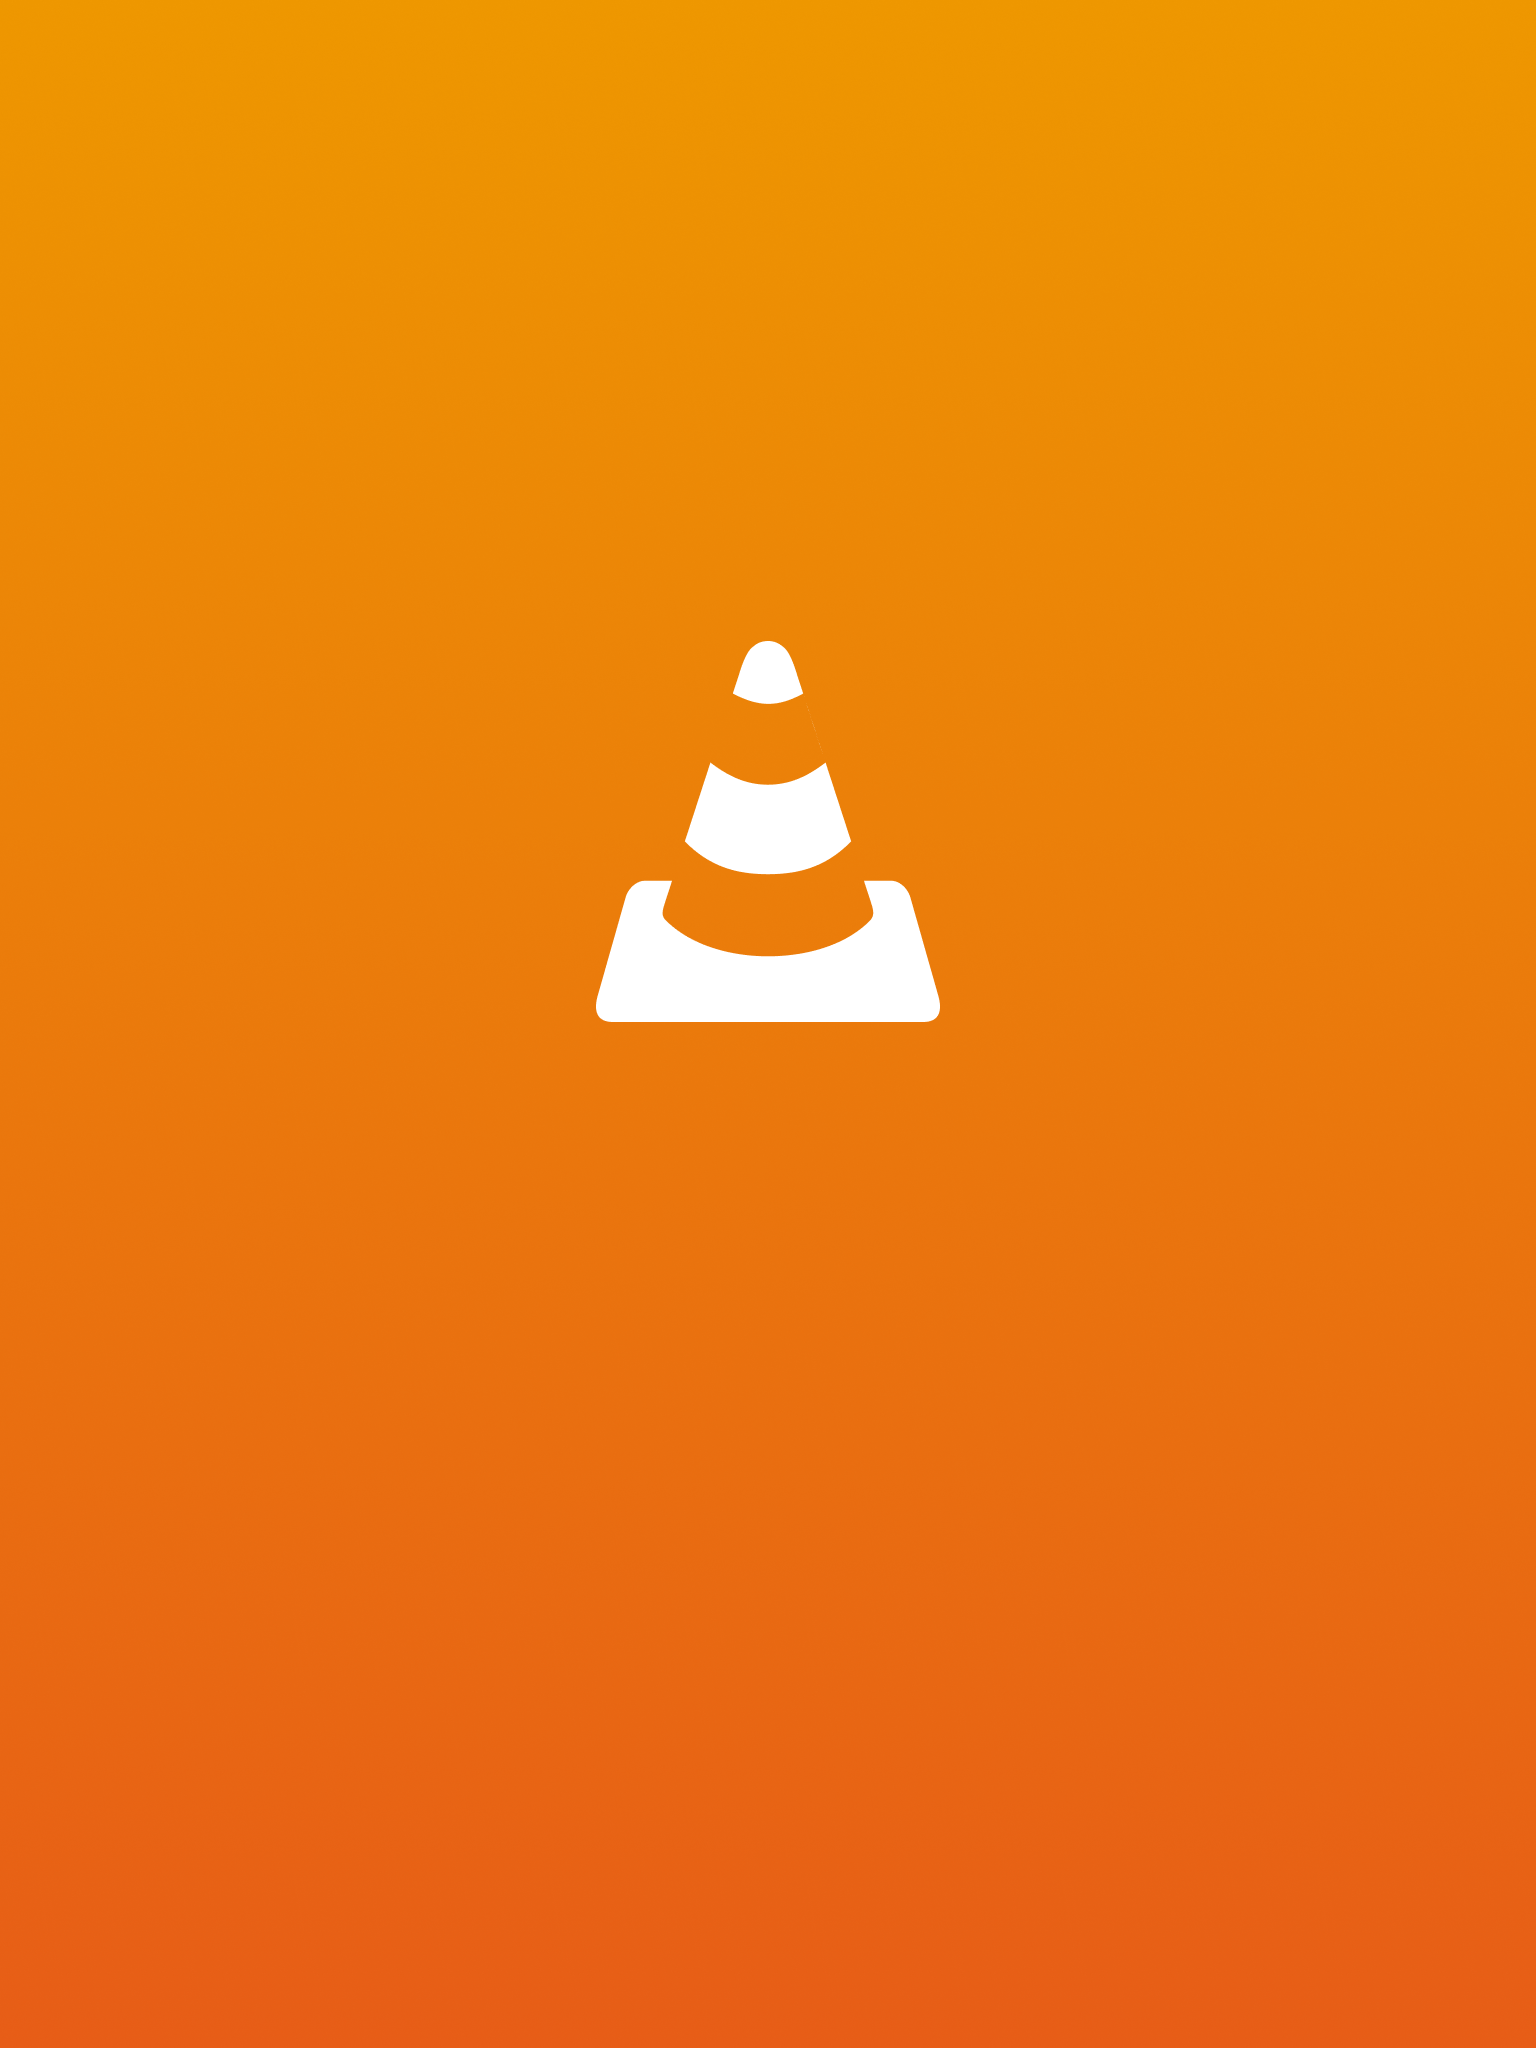 vlc-ios/Images.xcassets/Launch.imageset/iPad@3x.png